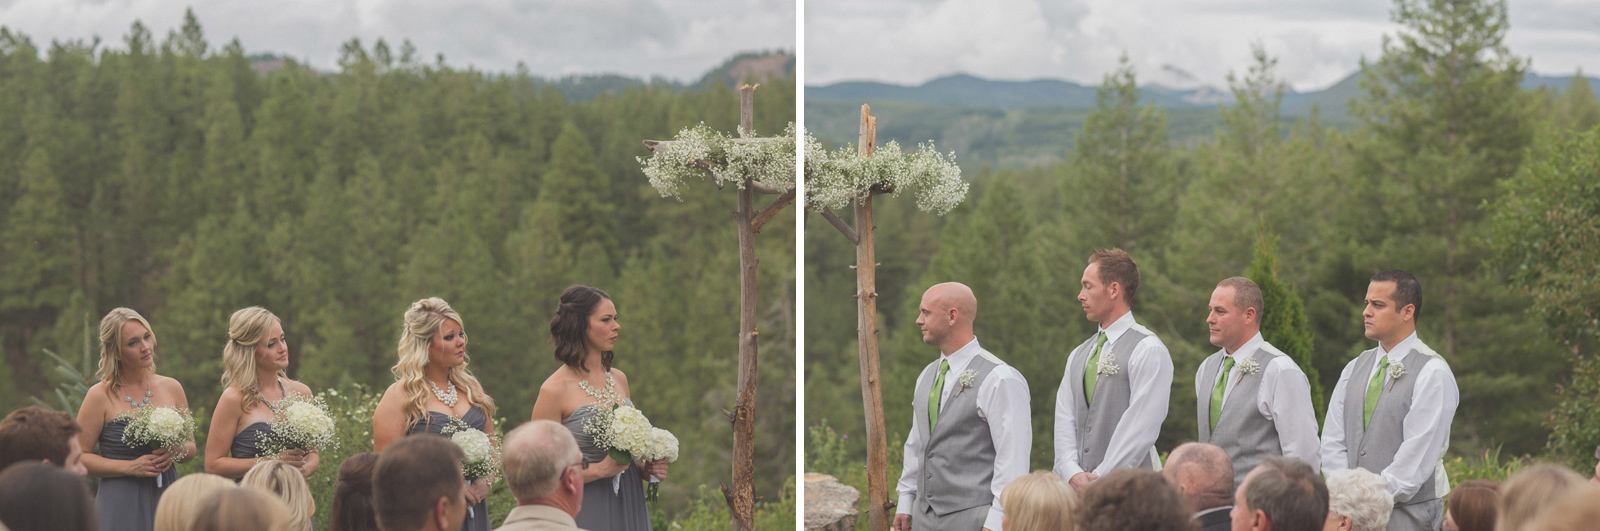 131-wedding-ideas-ideas-wedding-forest-mason-jars-backdrop-colorado-mancos-ceremony